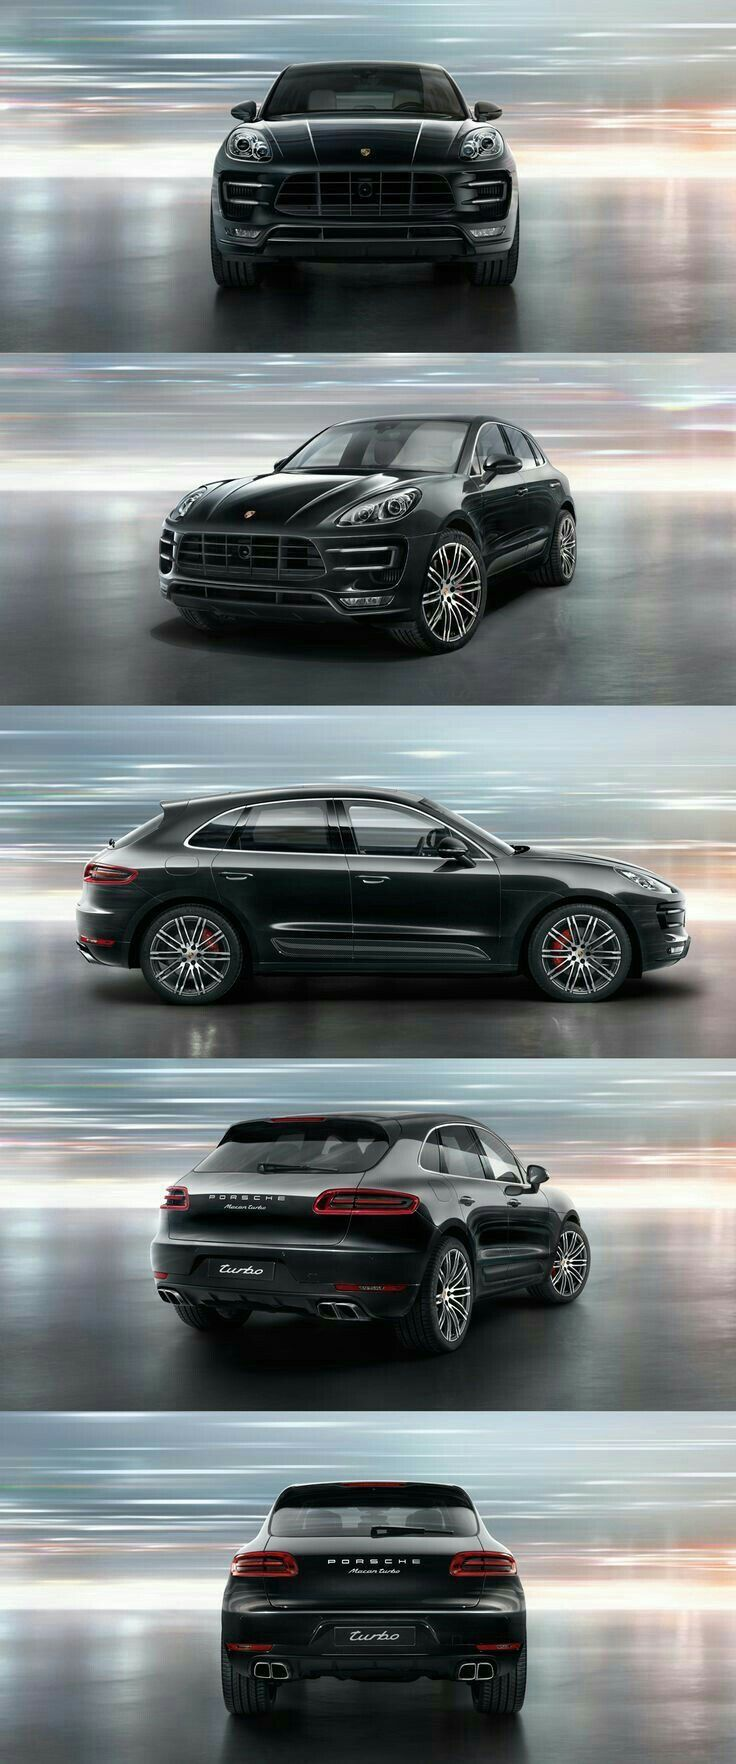 Porsche Macan - Turbo